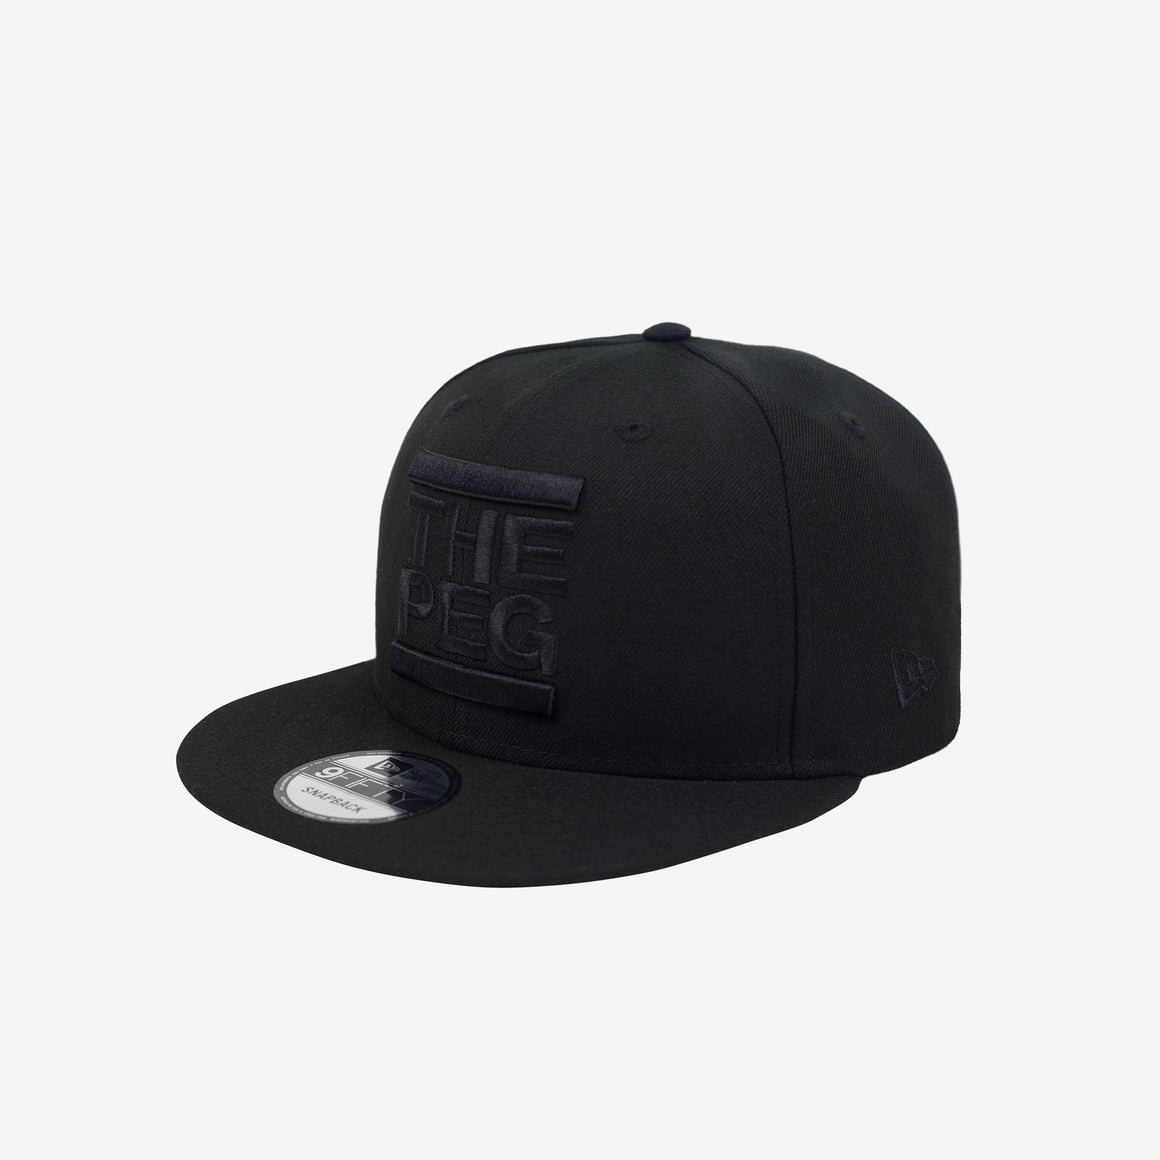 New Era 9FIFTY Classic Snapback (Monochromatic Black)